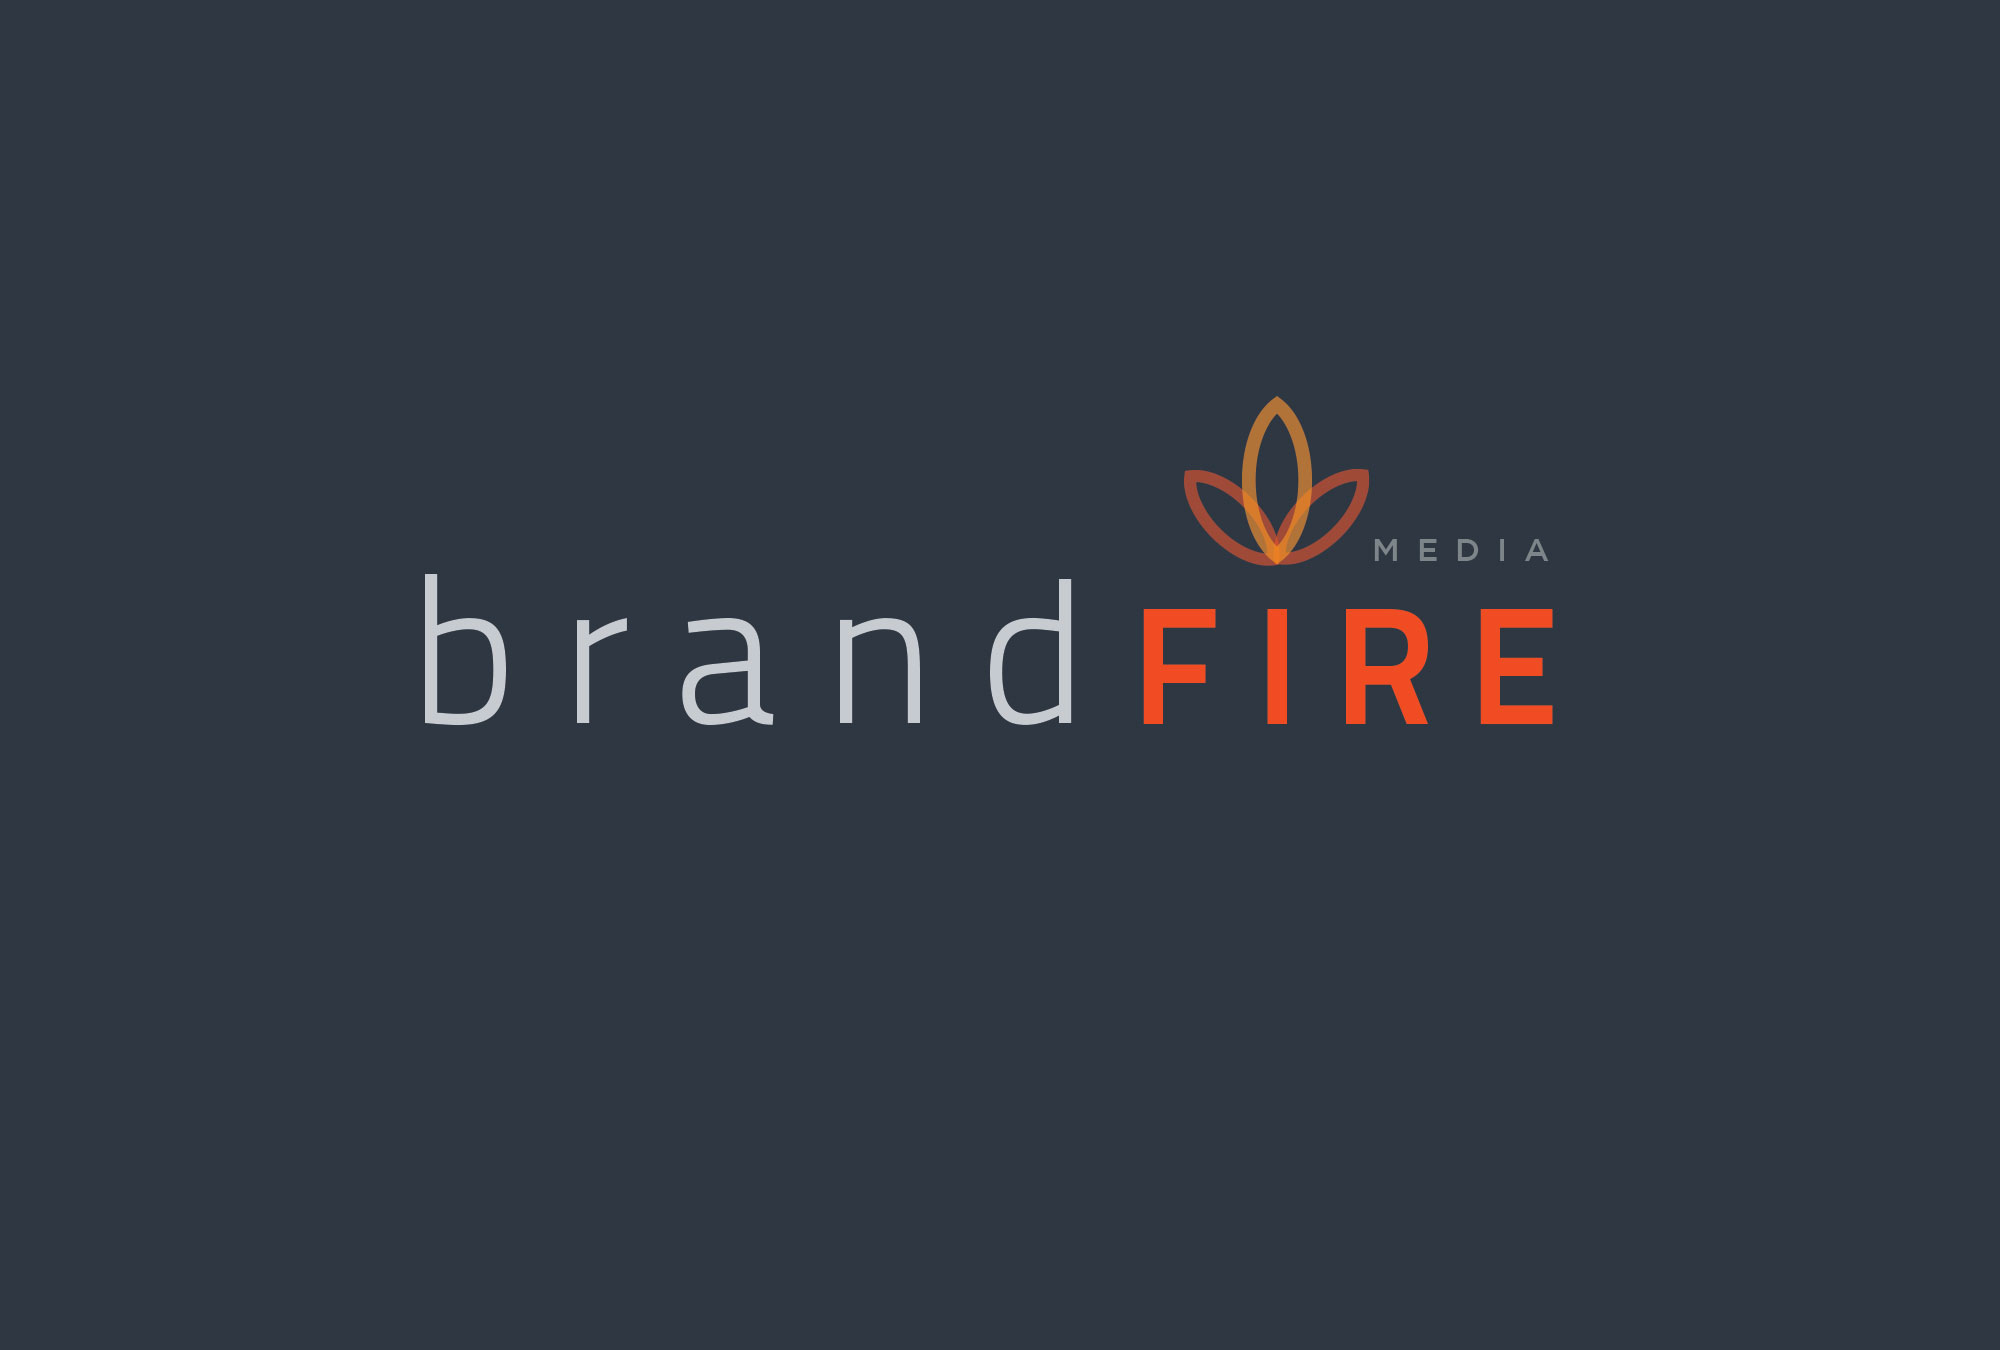 brandfire logo on dark